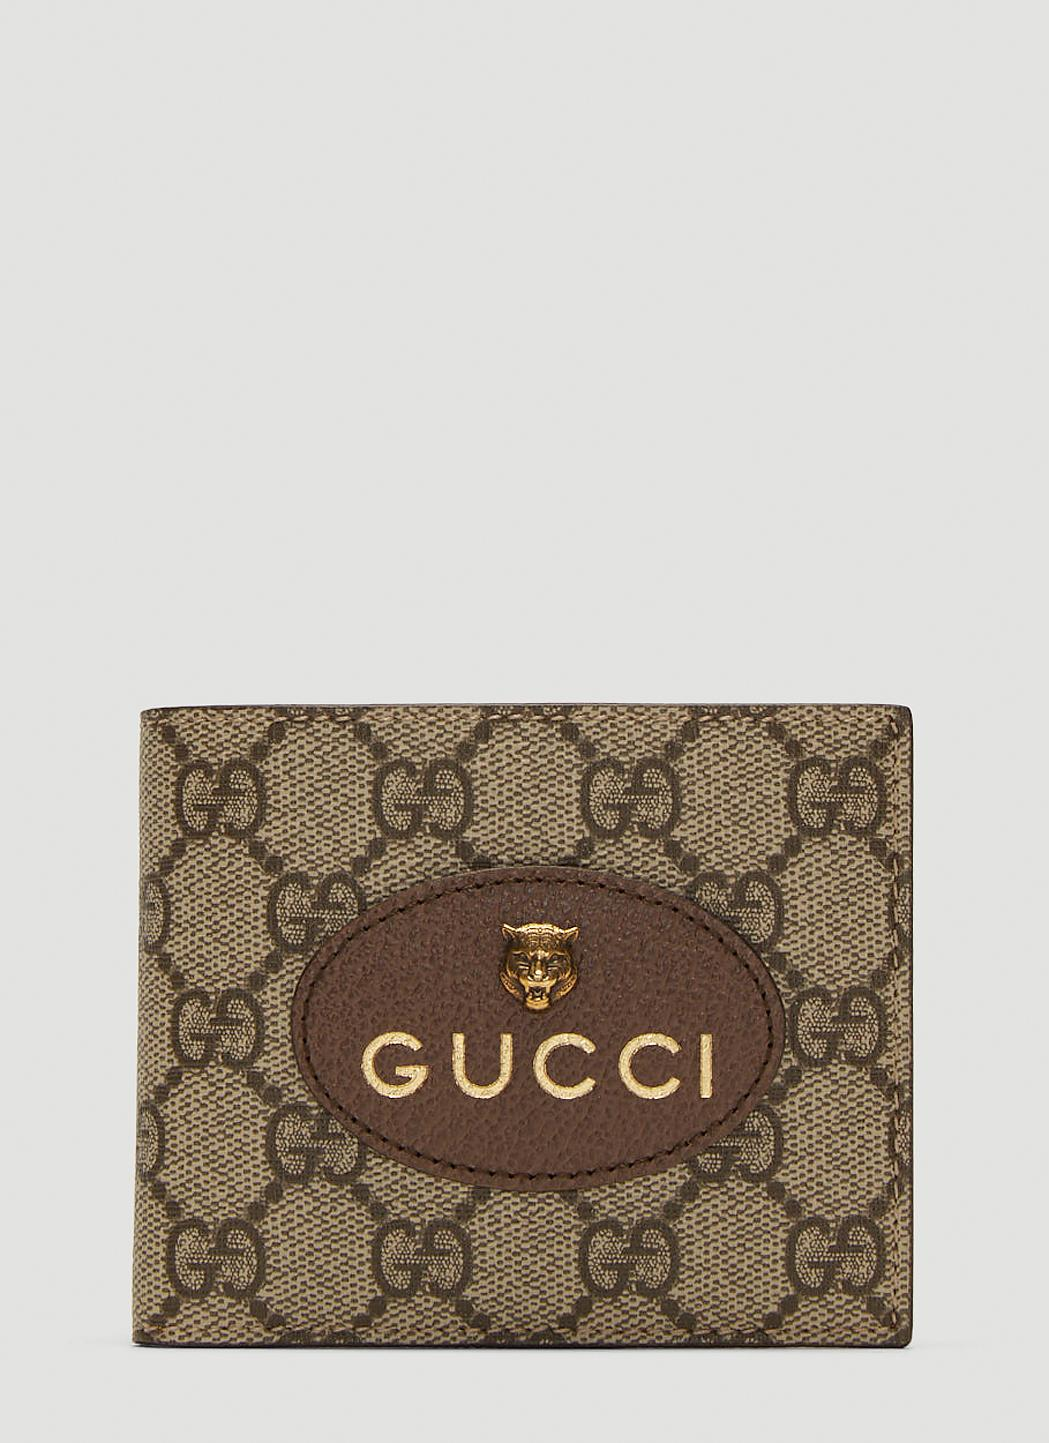 16714280d55 Gucci - Natural GG Supreme Wallet In Beige for Men - Lyst. View fullscreen